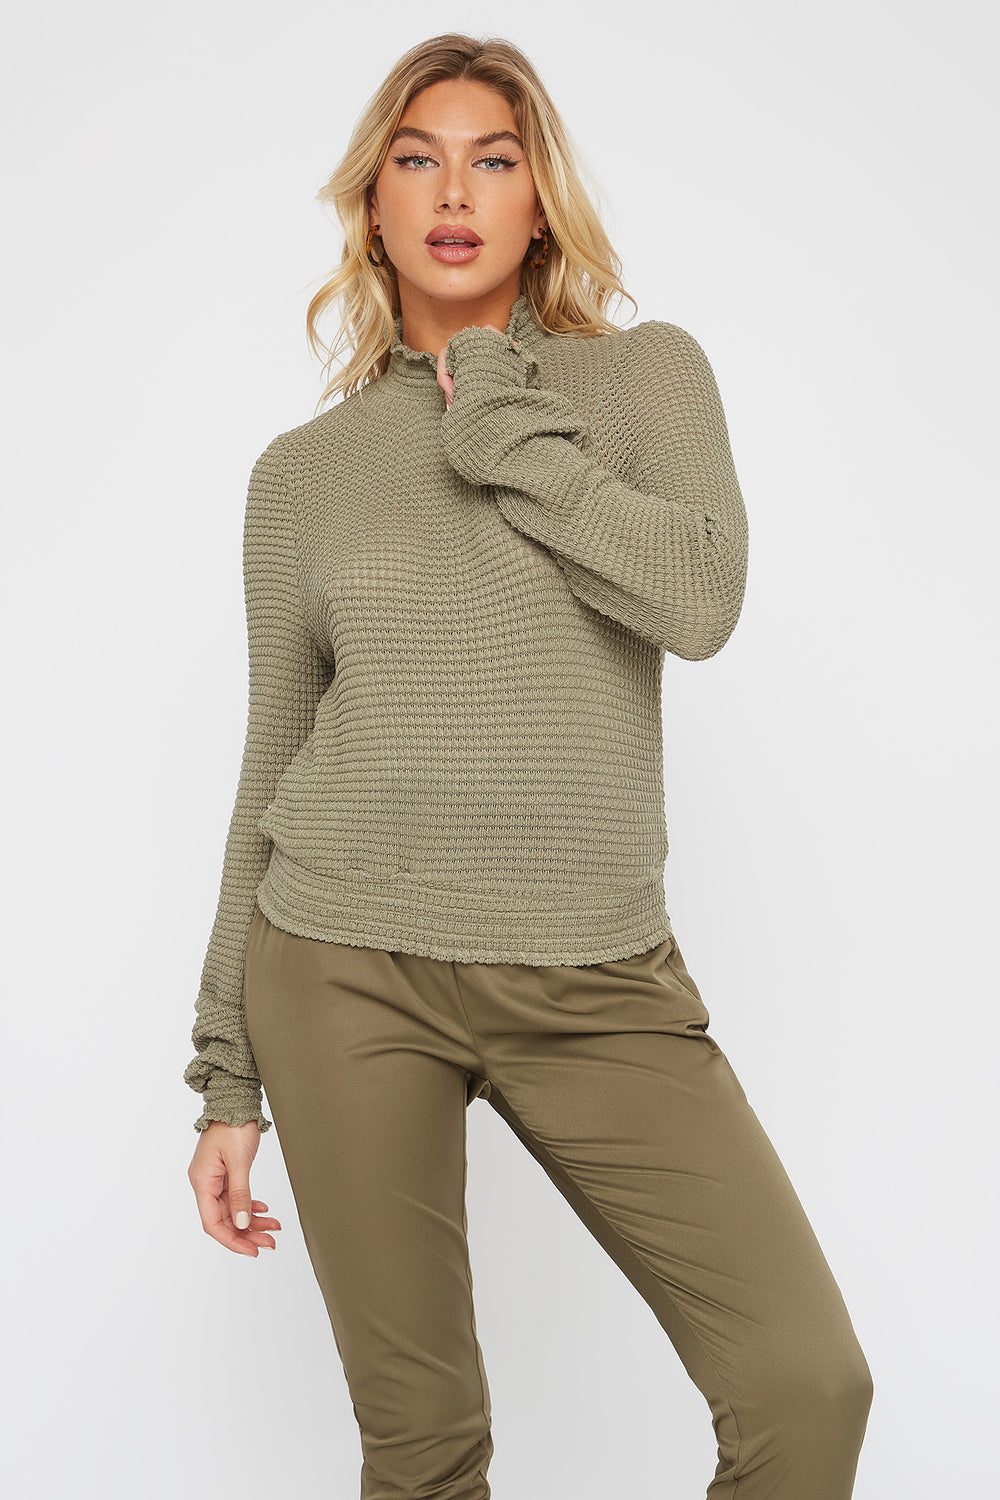 Soft Knit Smocked Turtleneck Long Sleeve Dark Green